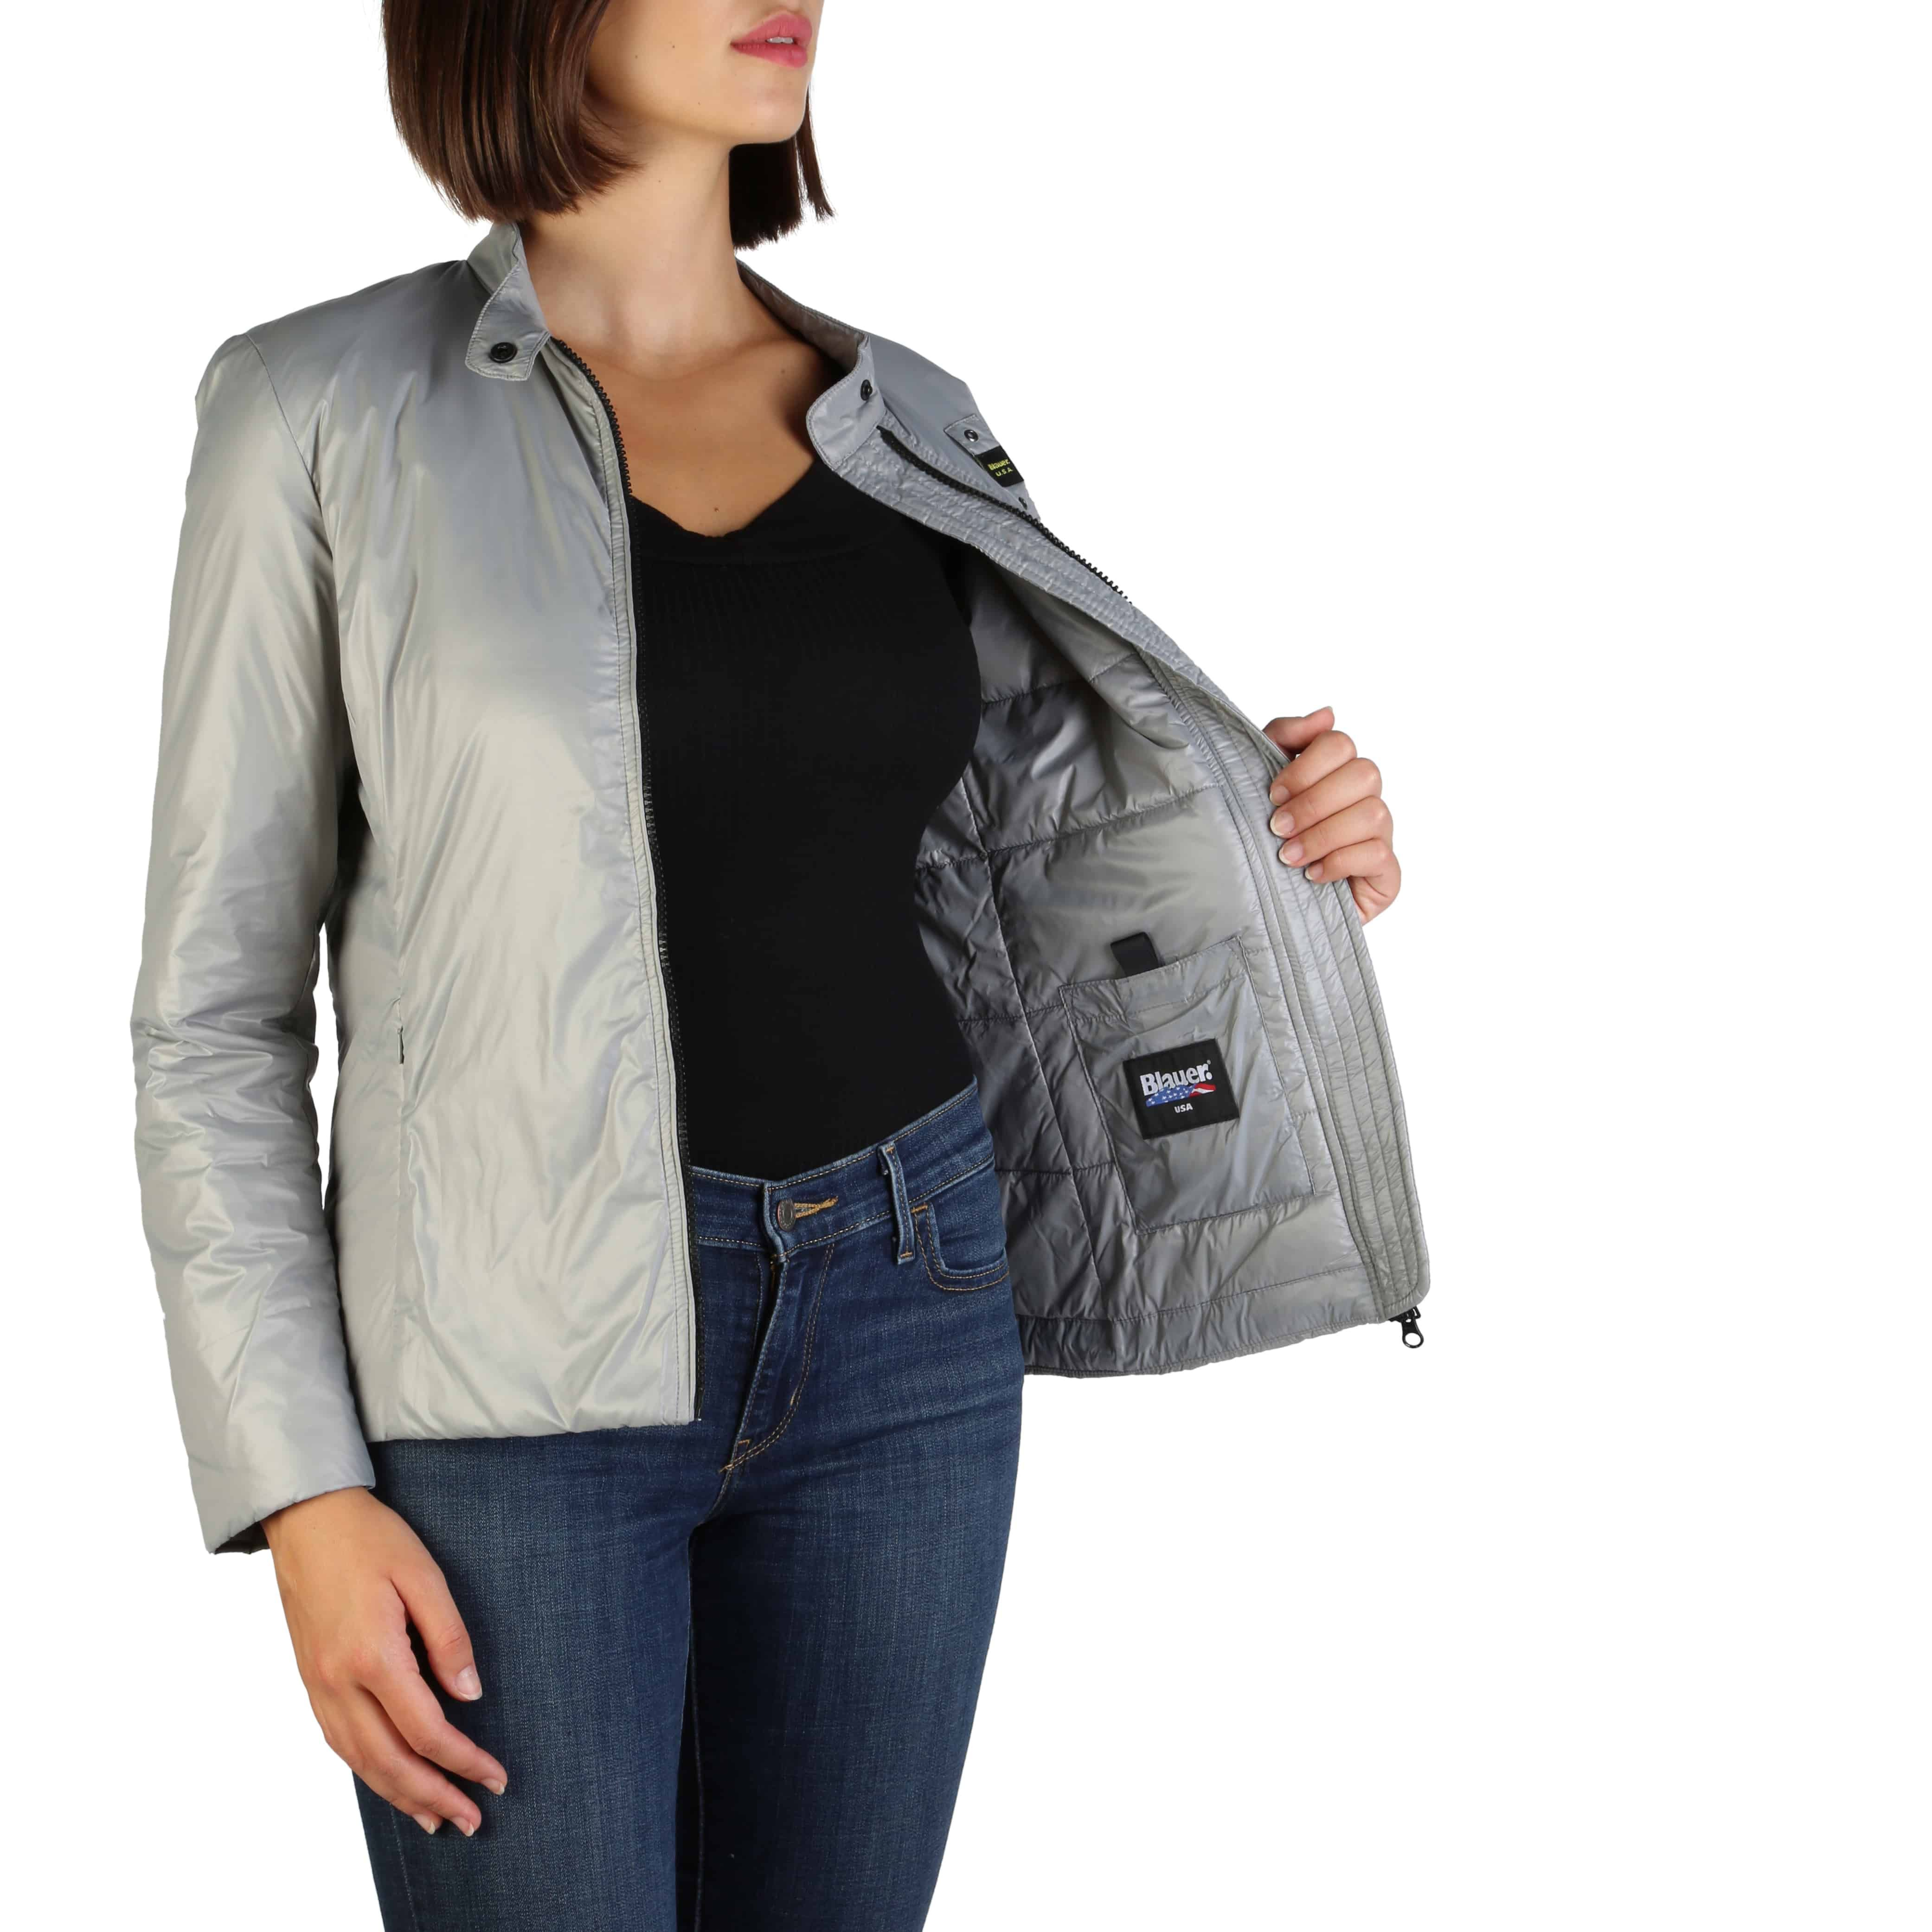 Blauer | You Fashion Outlet